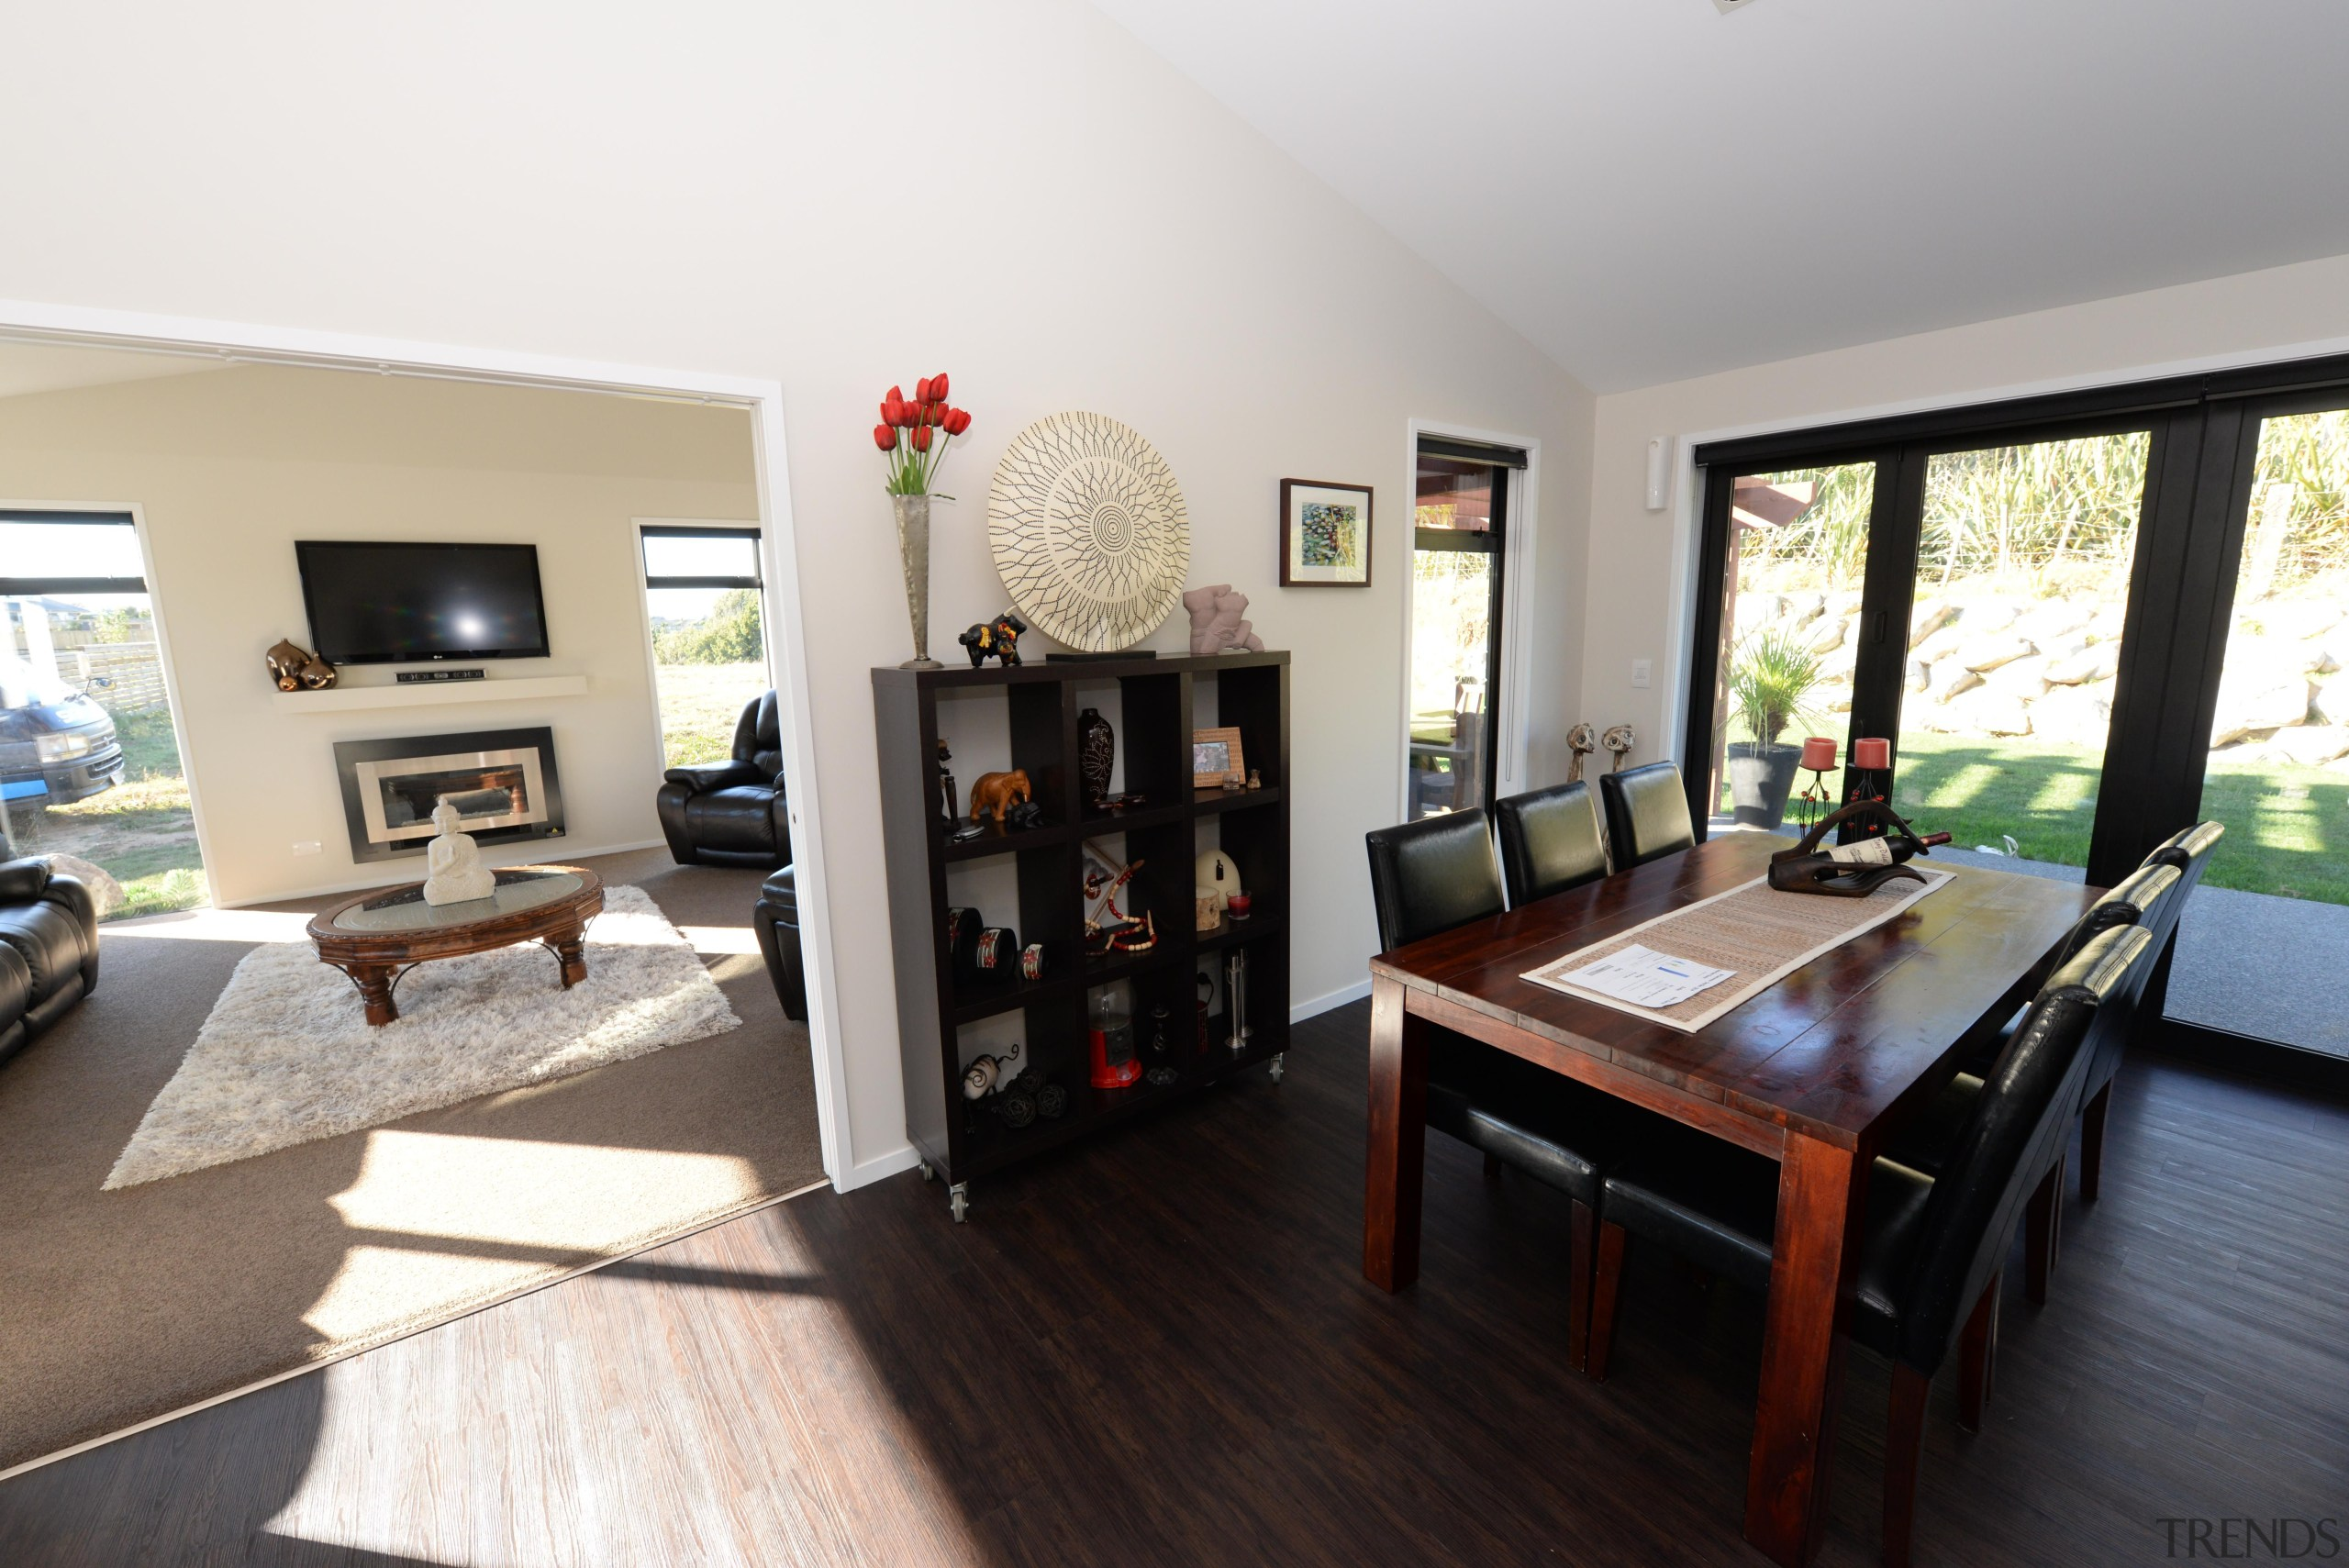 This home has a kitchen-dining area that is house, interior design, living room, property, real estate, room, white, black